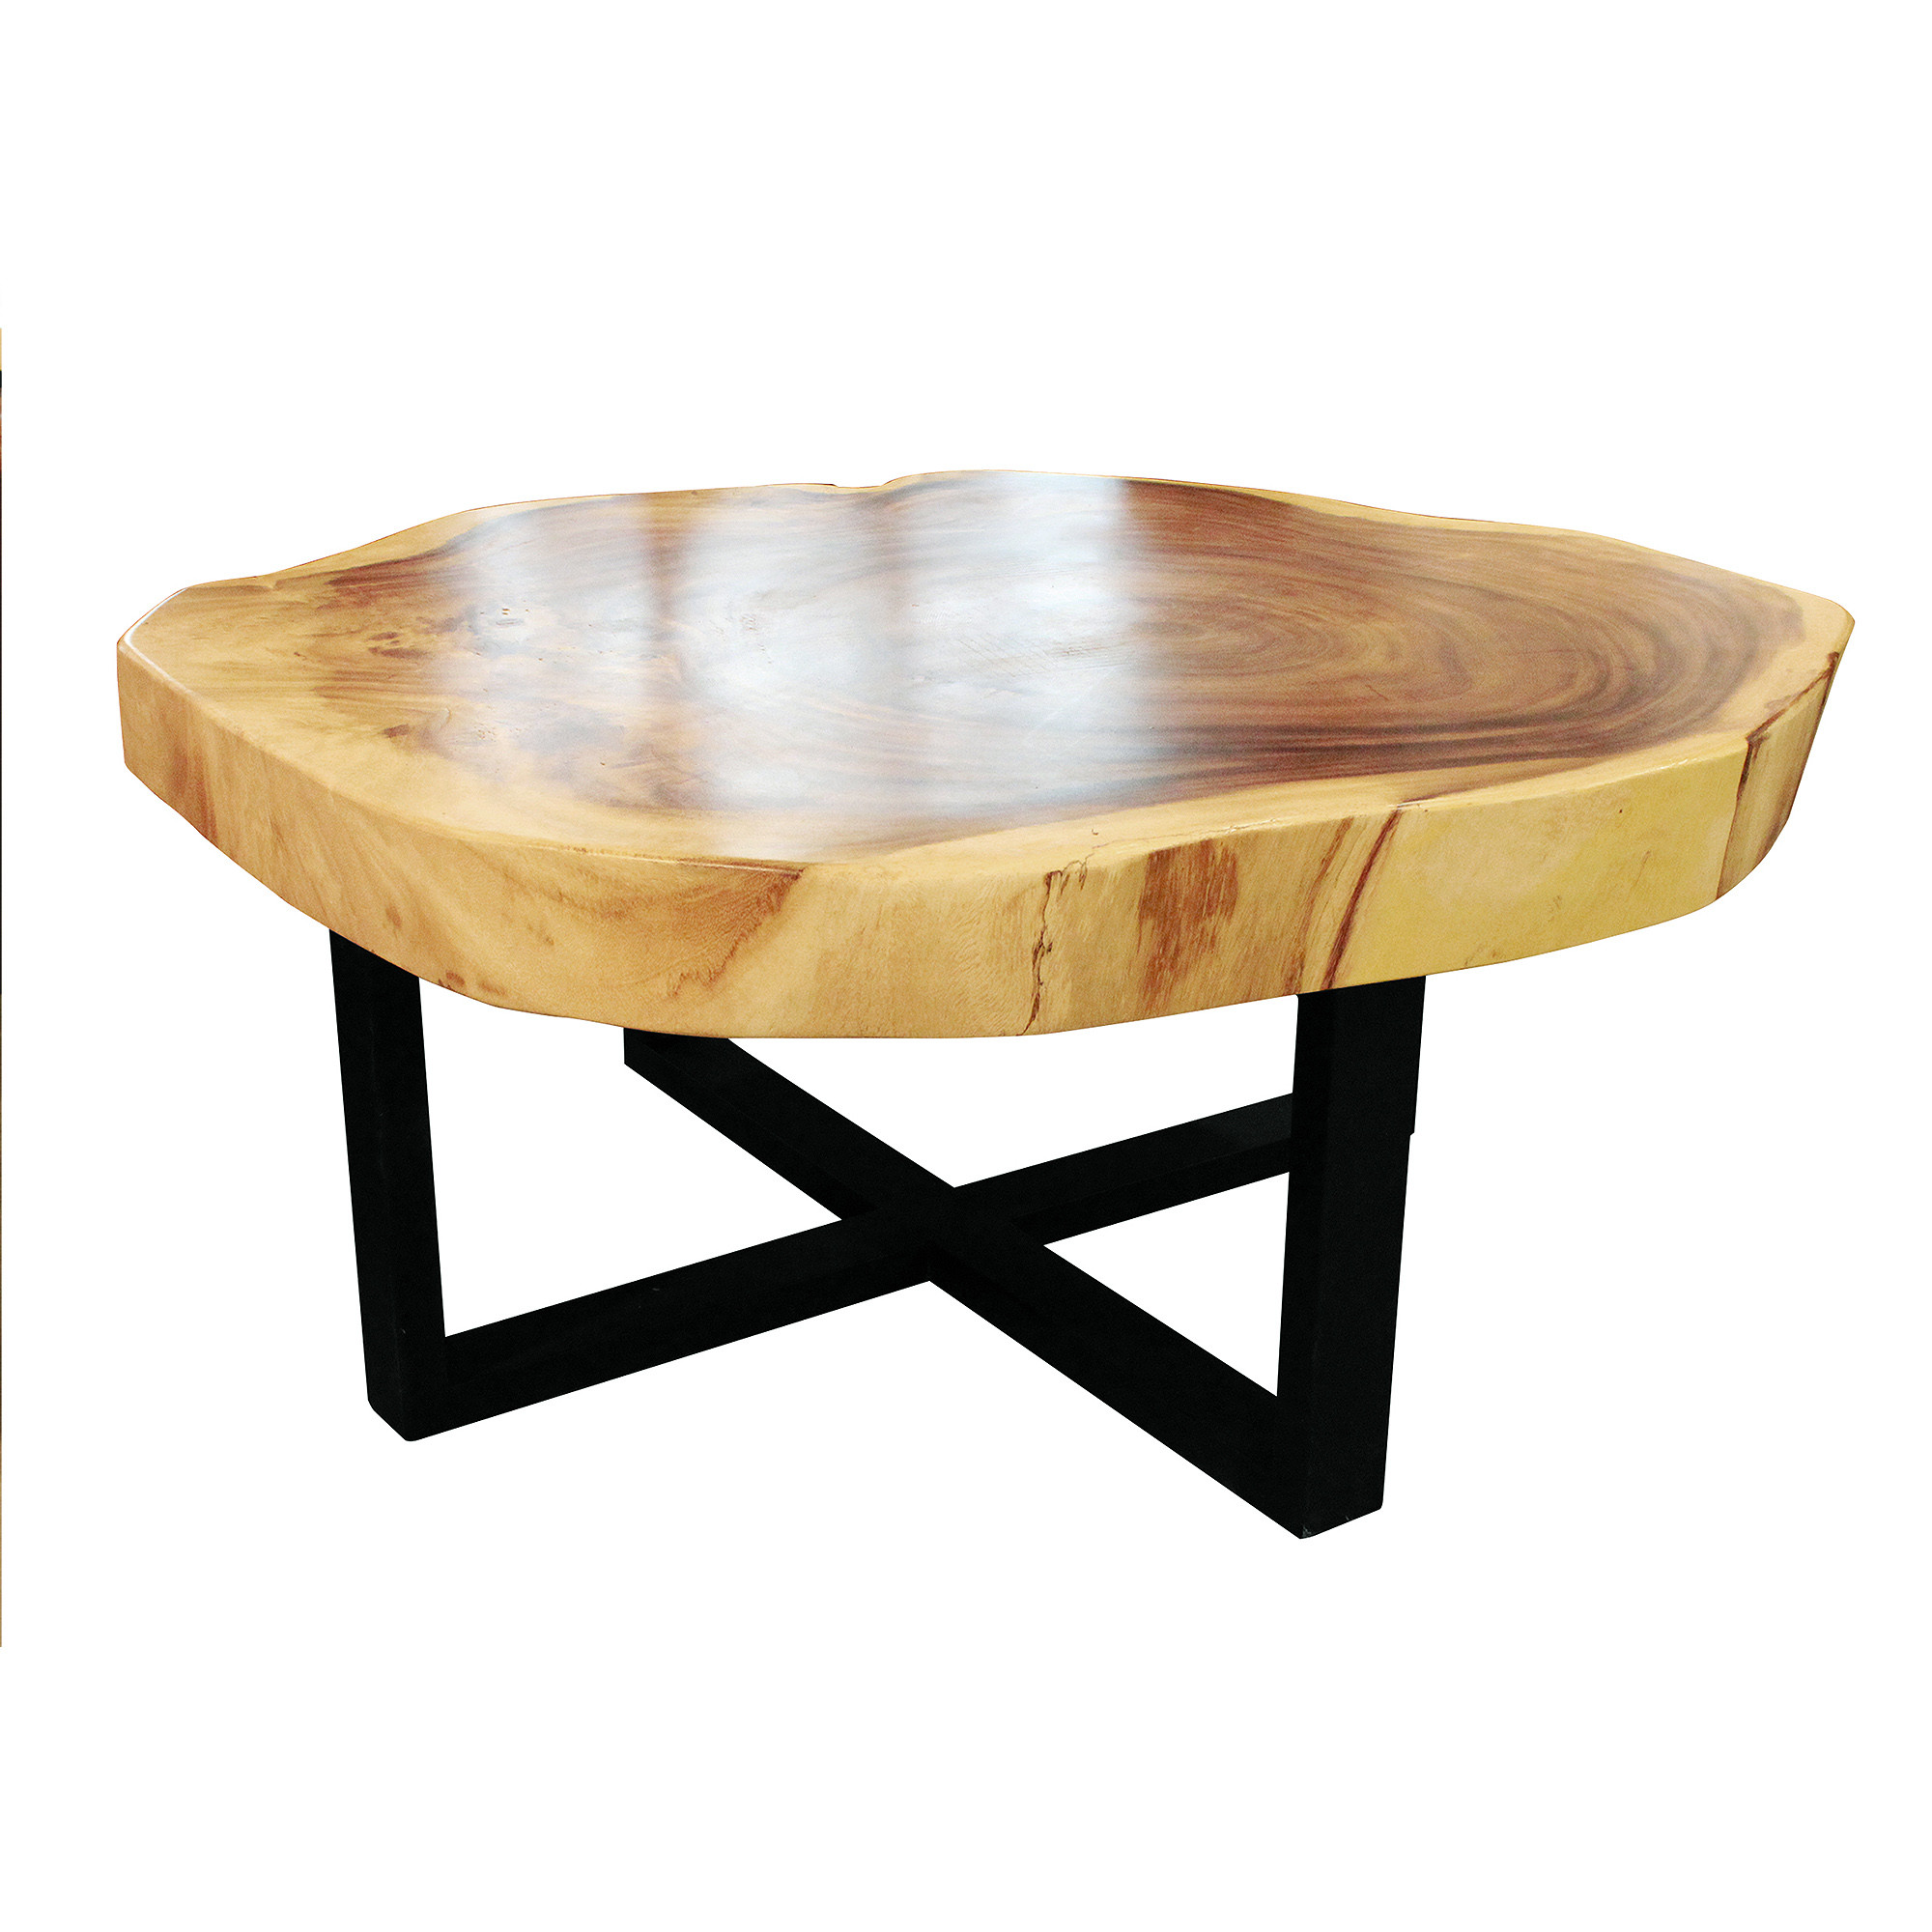 Round Coffee Table With Storage Singapore: Round Coffee Table - Cross Base D100